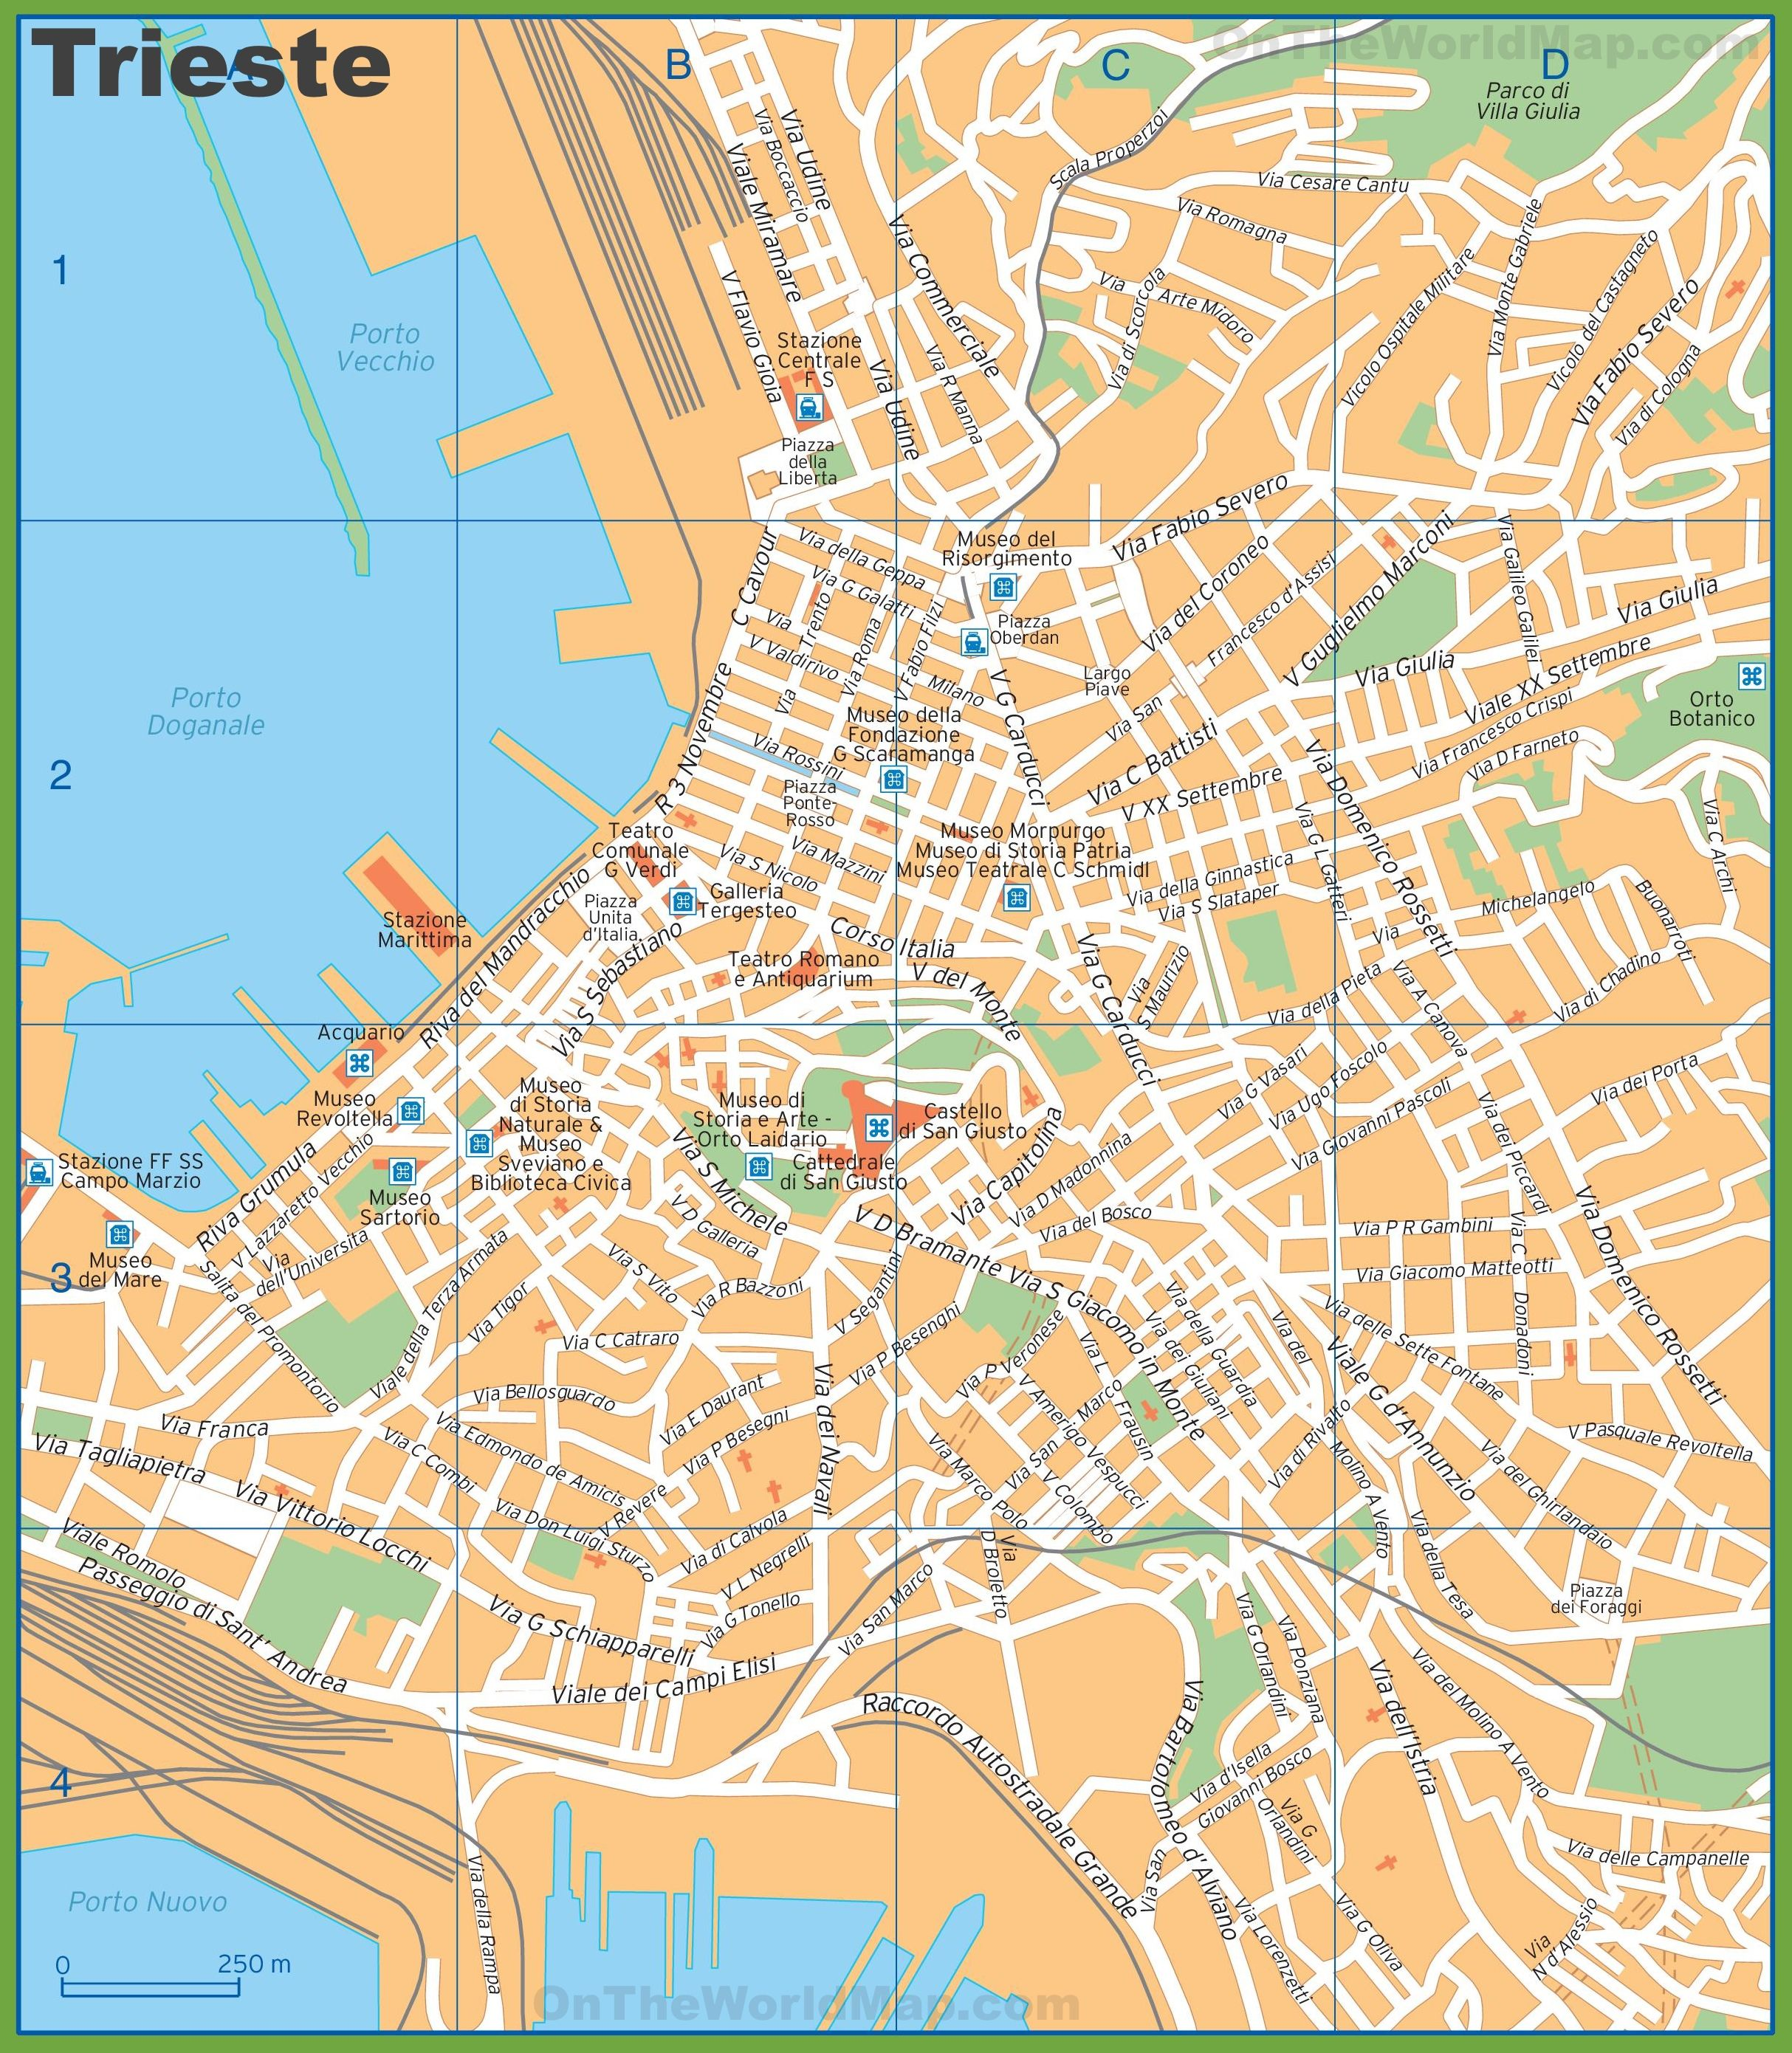 Tourist map of Trieste city centre Italy Trip Pinterest